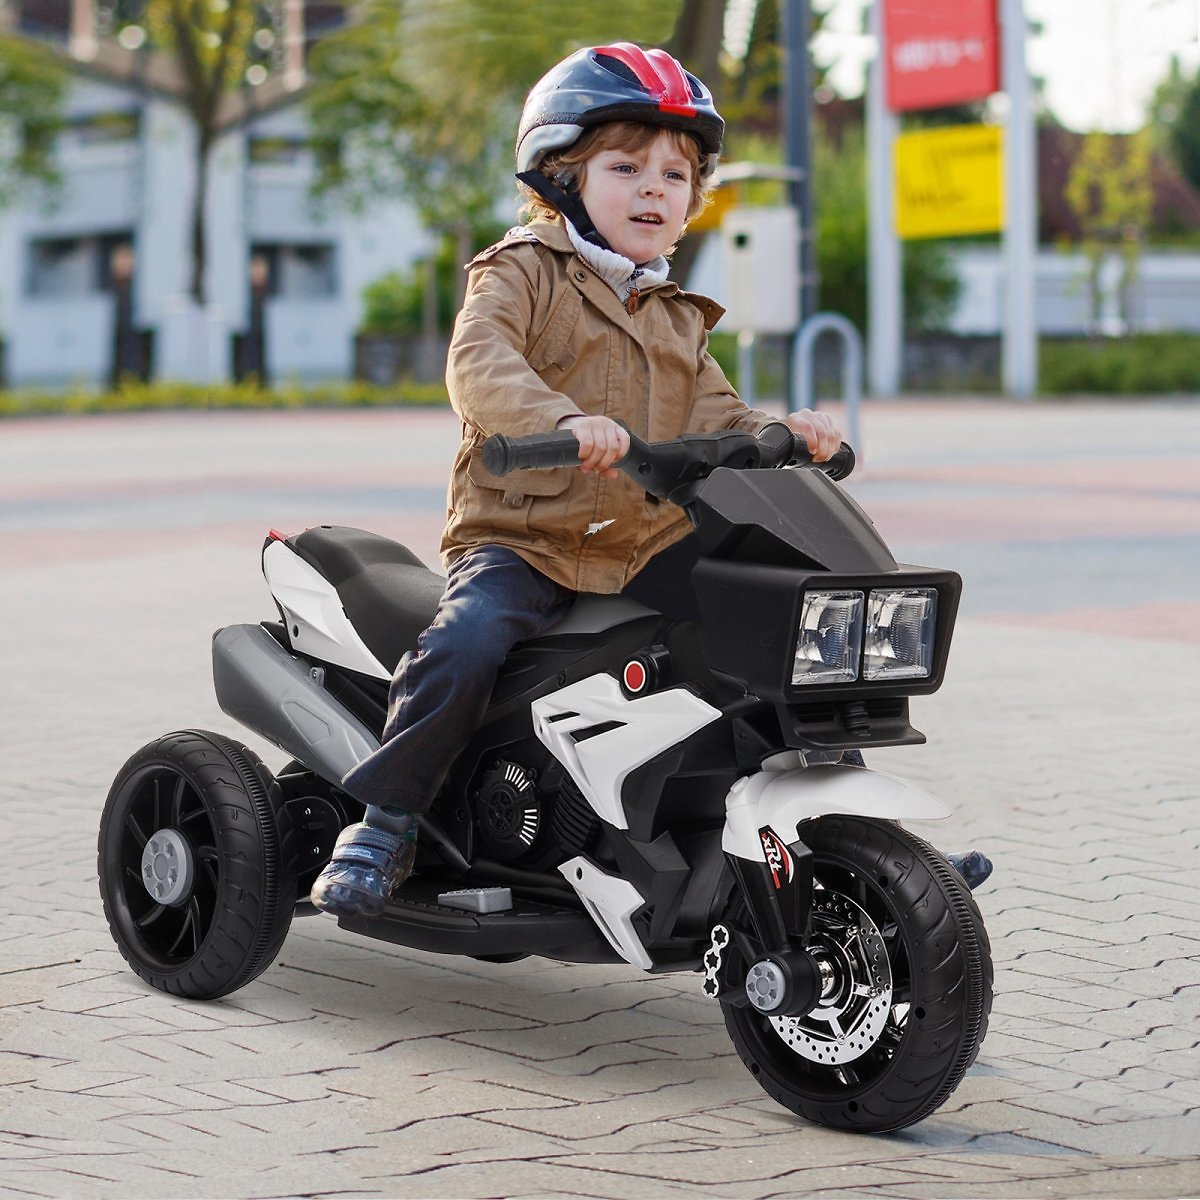 Aosom-Kids-Electric-Pedal-Motorcycle-Ride-On-Toy-6V-Battery-Powered-w-Music-Horn-Headlights-Motorbike